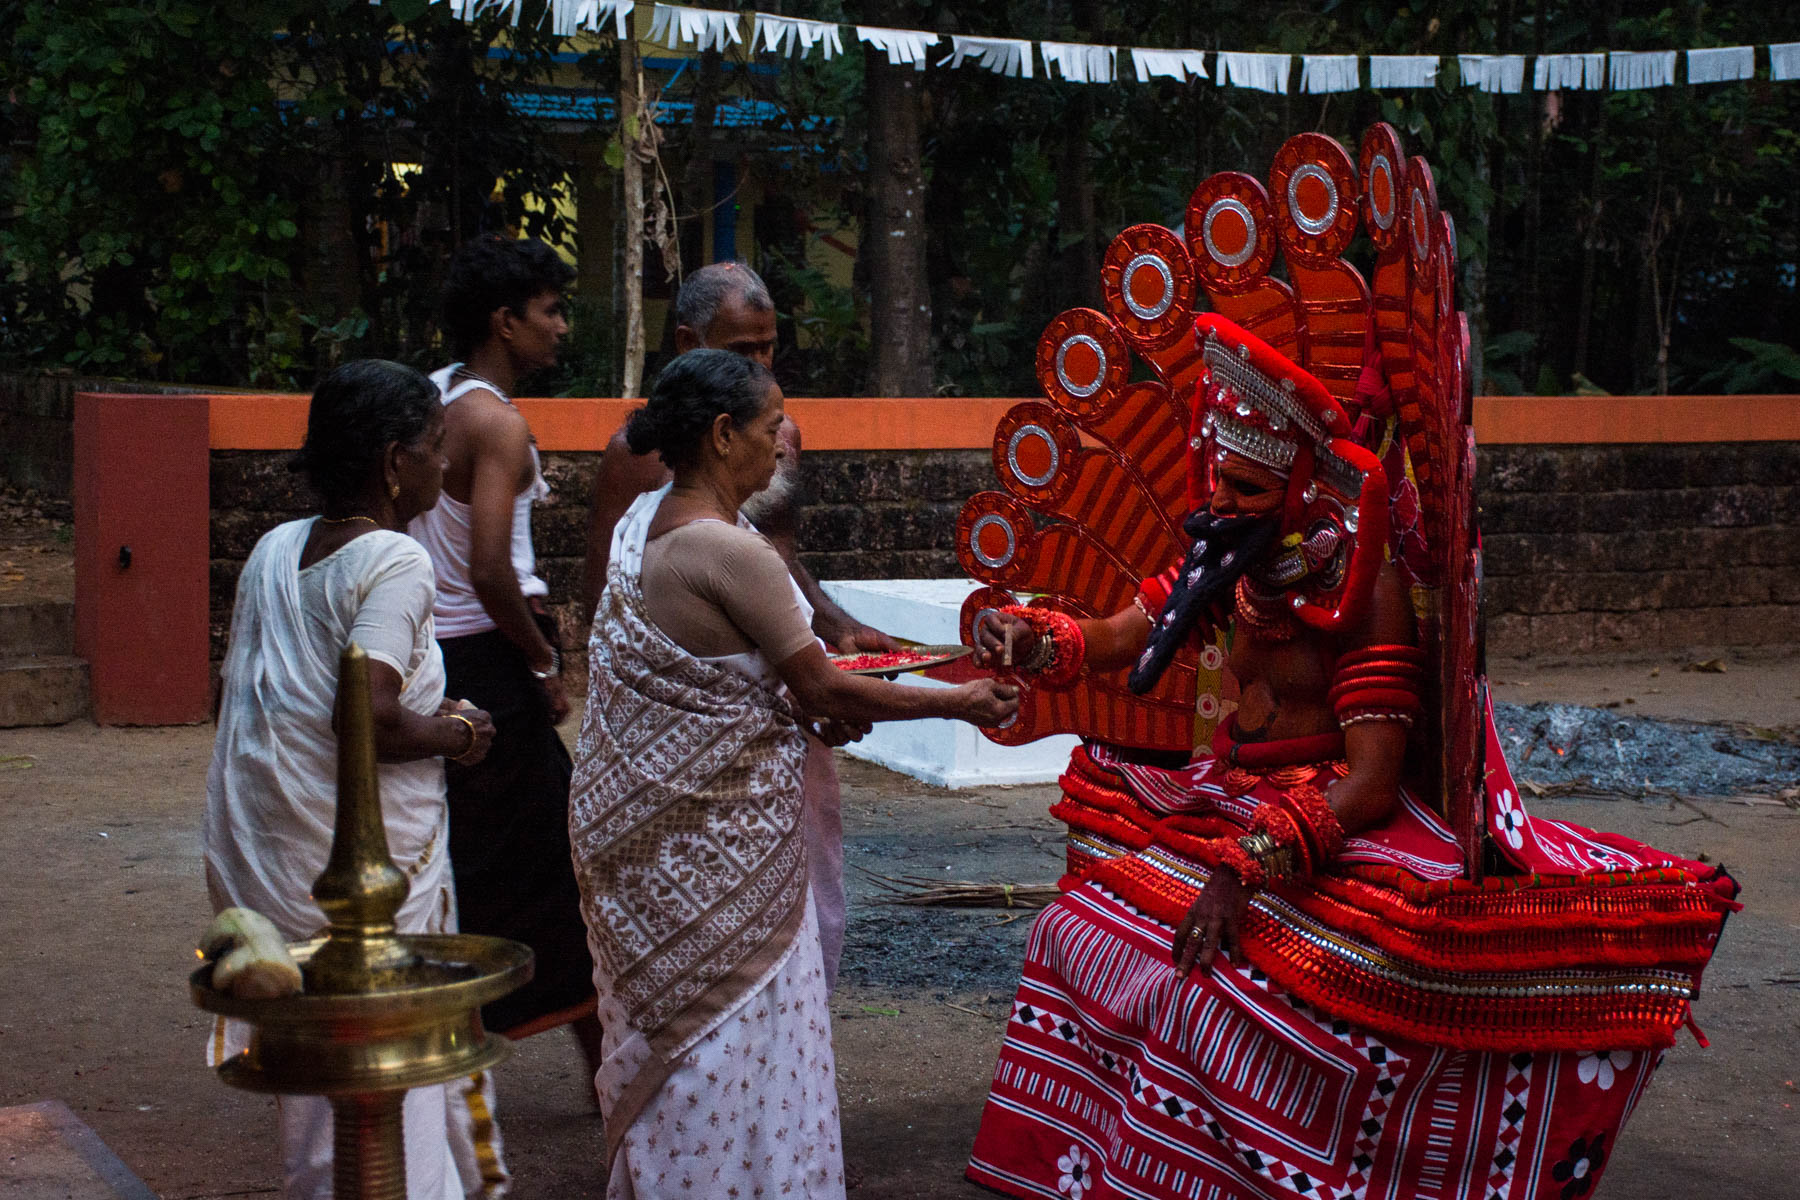 People coming to receive blessings - Where to see THeyyam in Kerala, India - Lost With Purpose